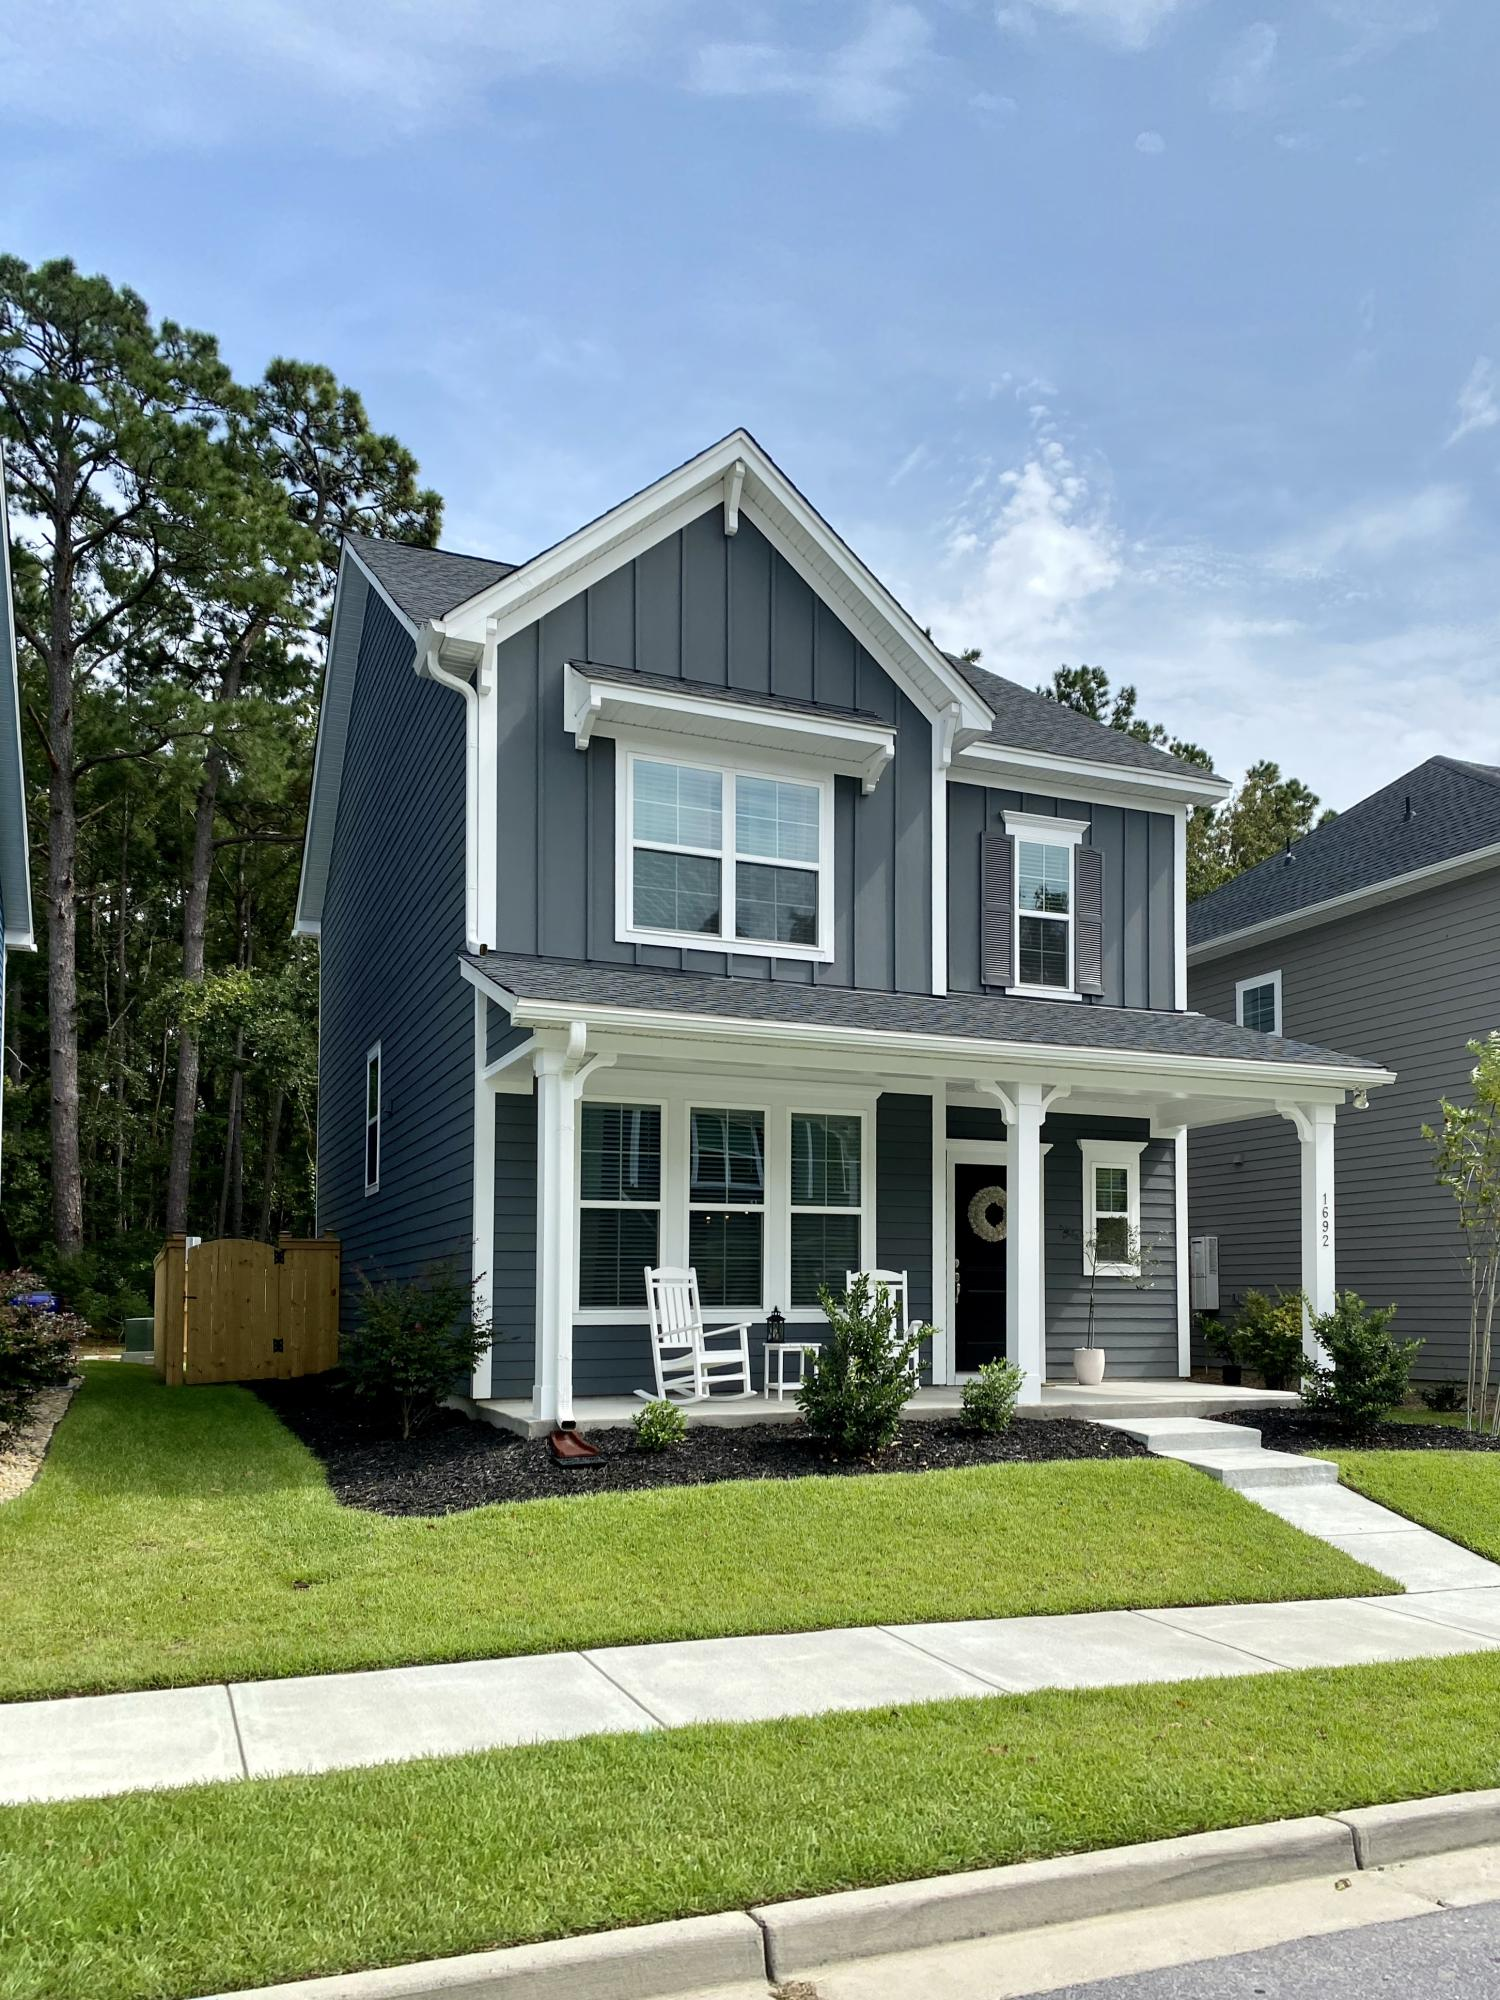 The Oaks at St Johns Crossing Homes For Sale - 1692 Emmets, Johns Island, SC - 15